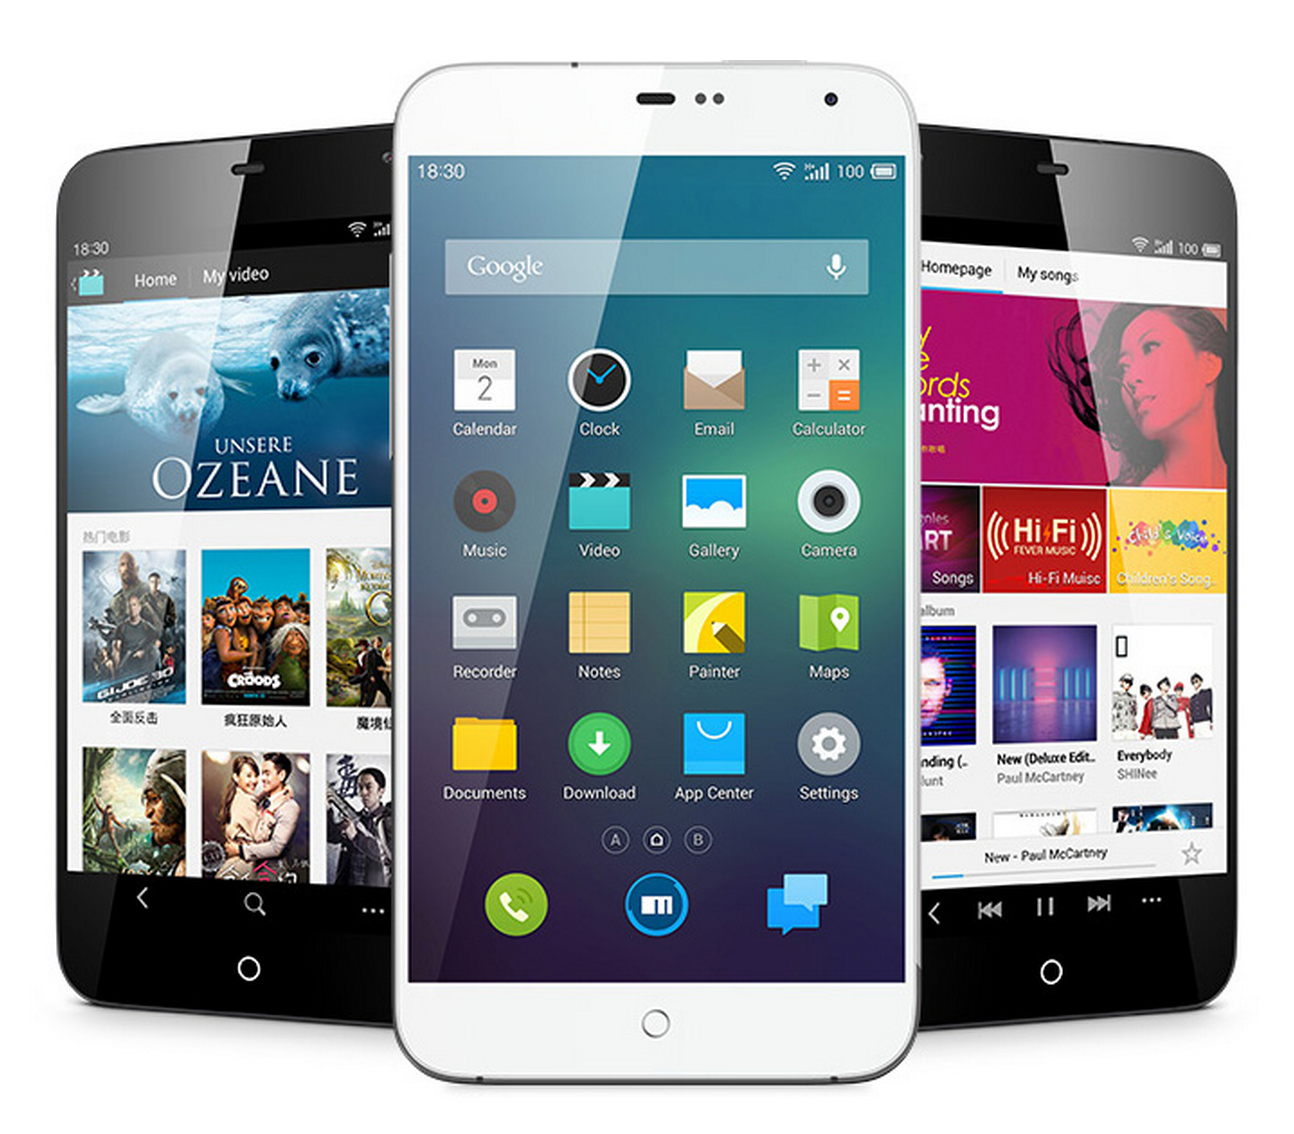 Chinese Smartphone Maker Meizu Announces Plans To Enter